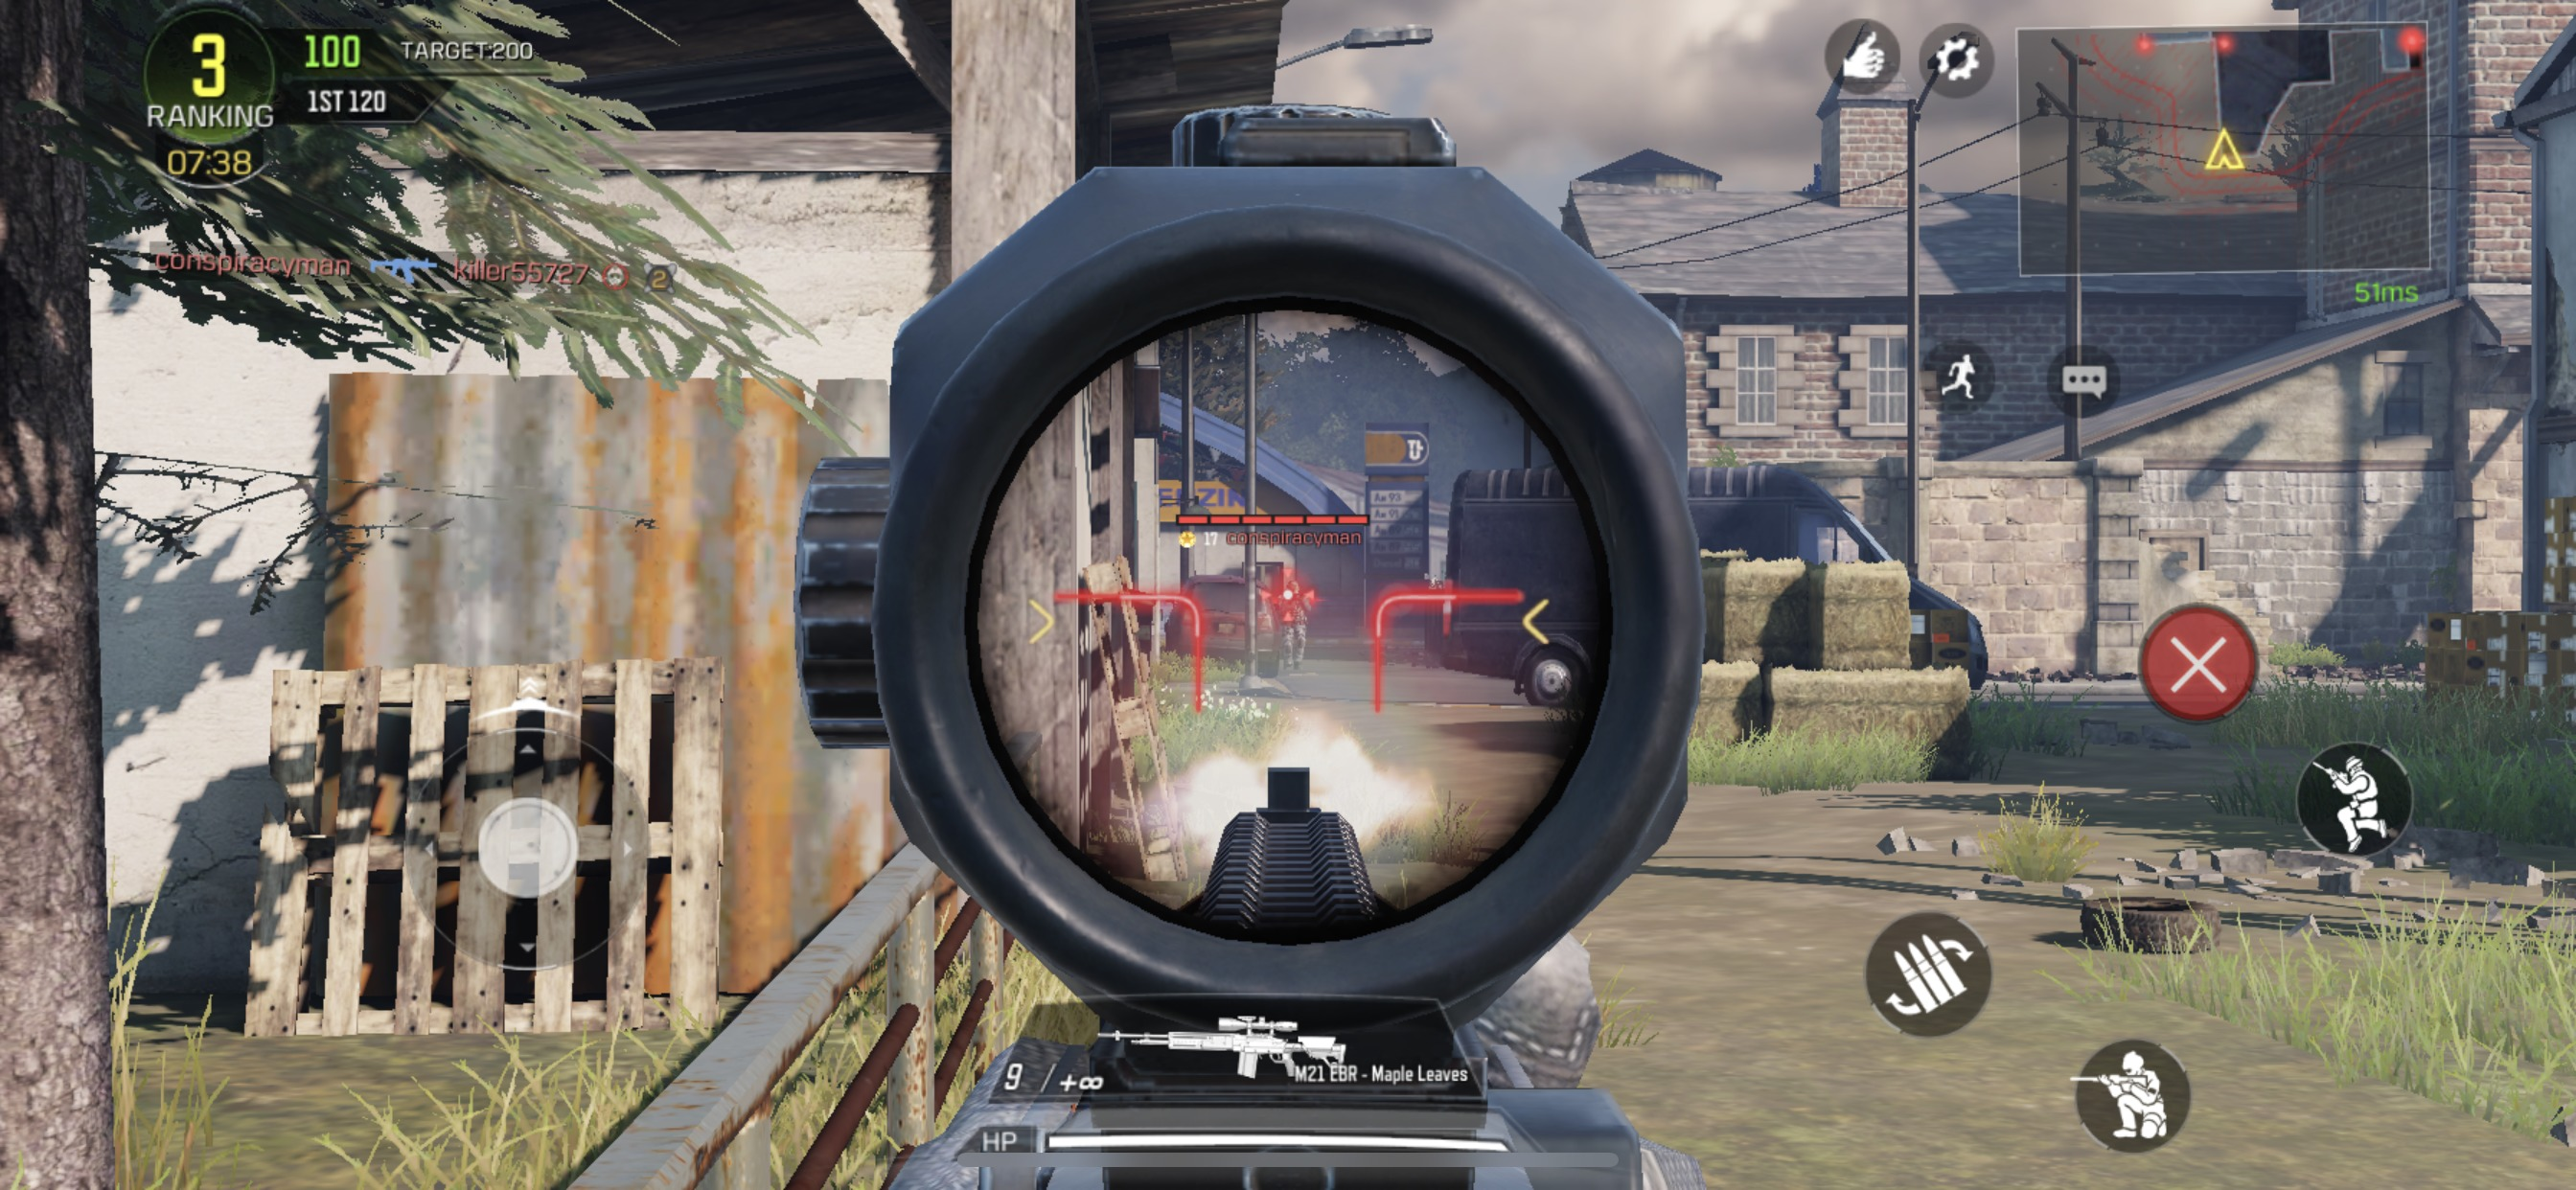 Call of Duty: Mobile is the perfect complement to the console and PC versions